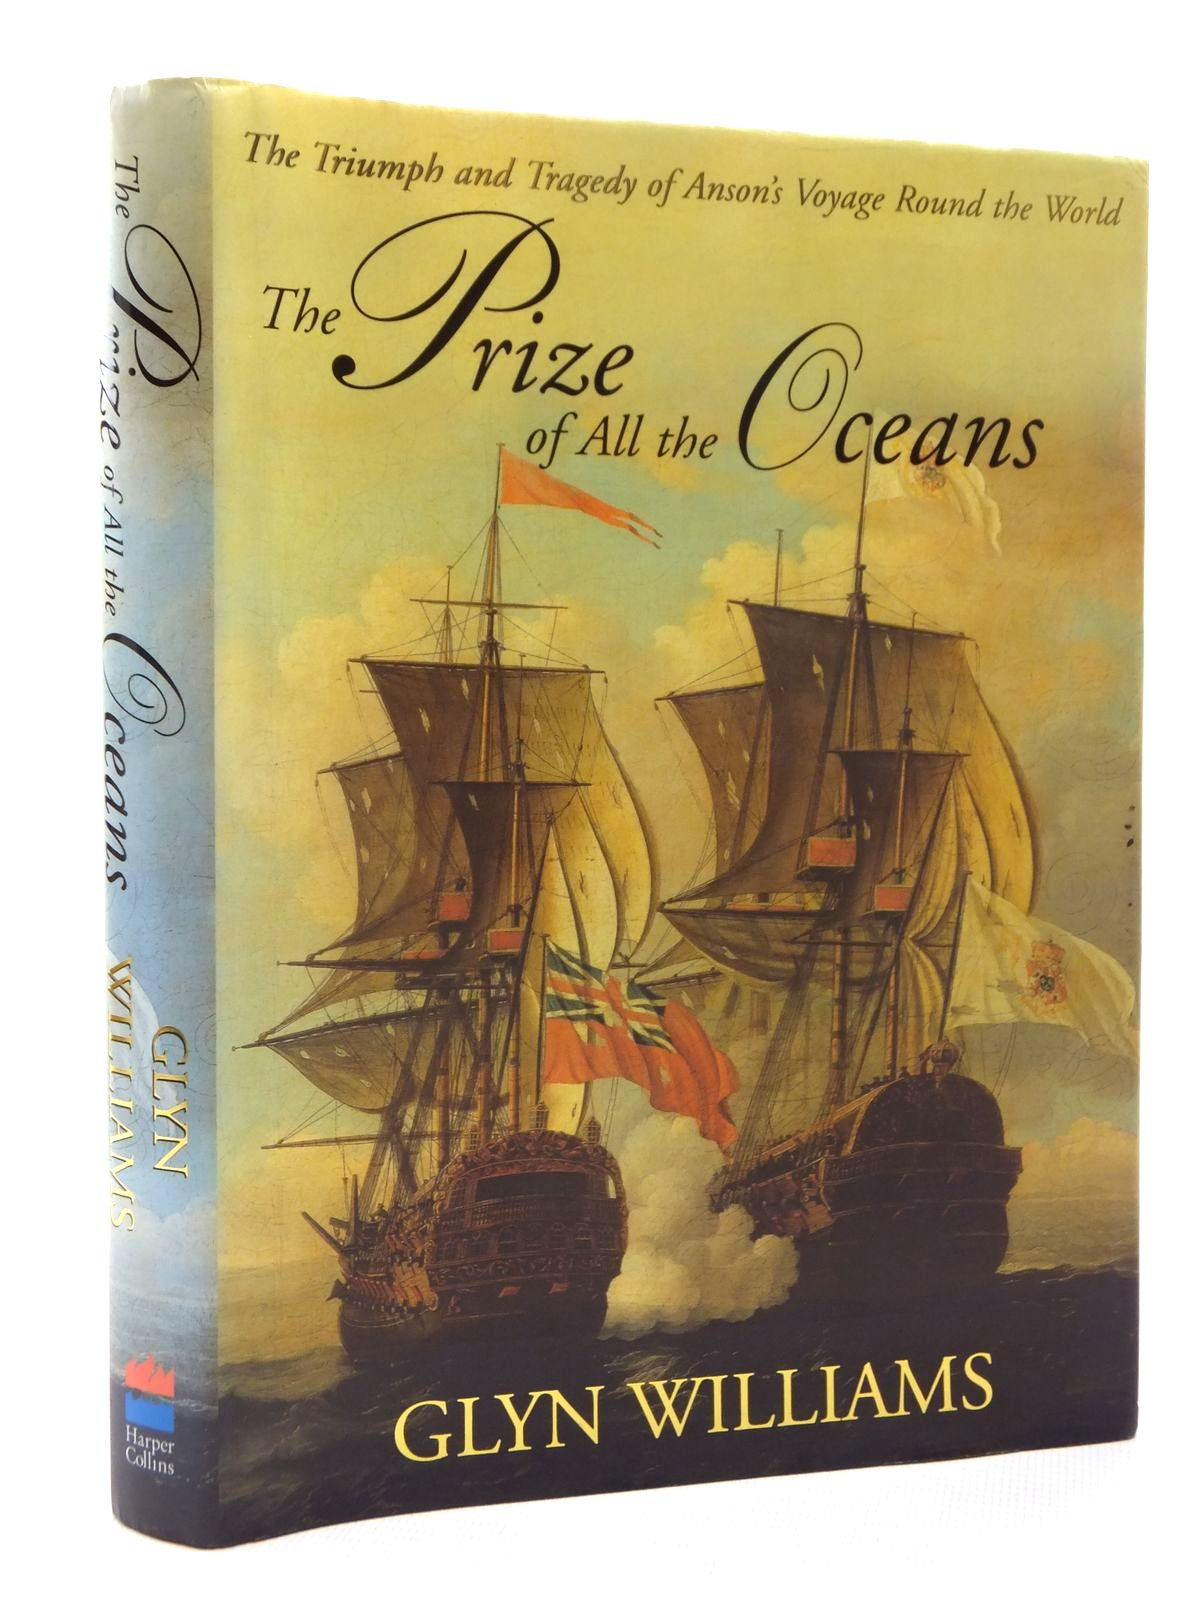 Photo of THE PRIZE OF ALL THE OCEANS THE TRIUMPH AND TRAGEDY OF ANSON'S VOYAGE AROUND THE WORLD written by Williams, Glyn published by Harper Collins (STOCK CODE: 1815423)  for sale by Stella & Rose's Books